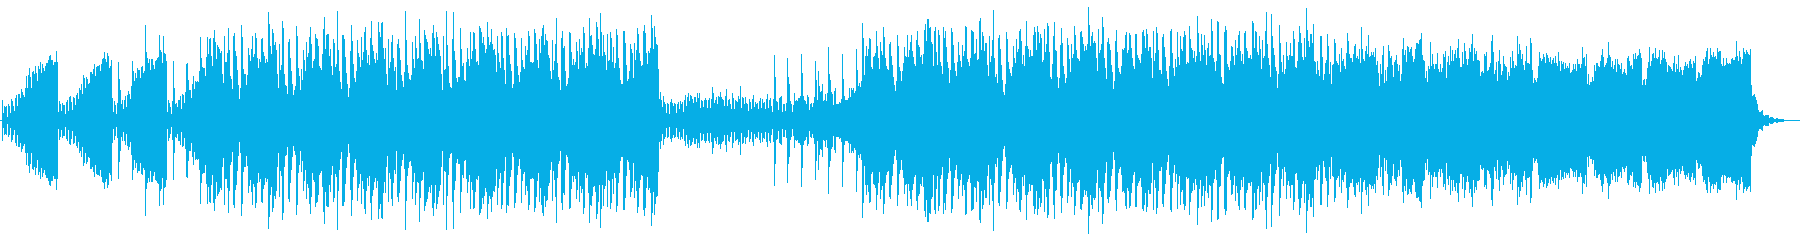 Clean and futuristic electro's reproduced waveform